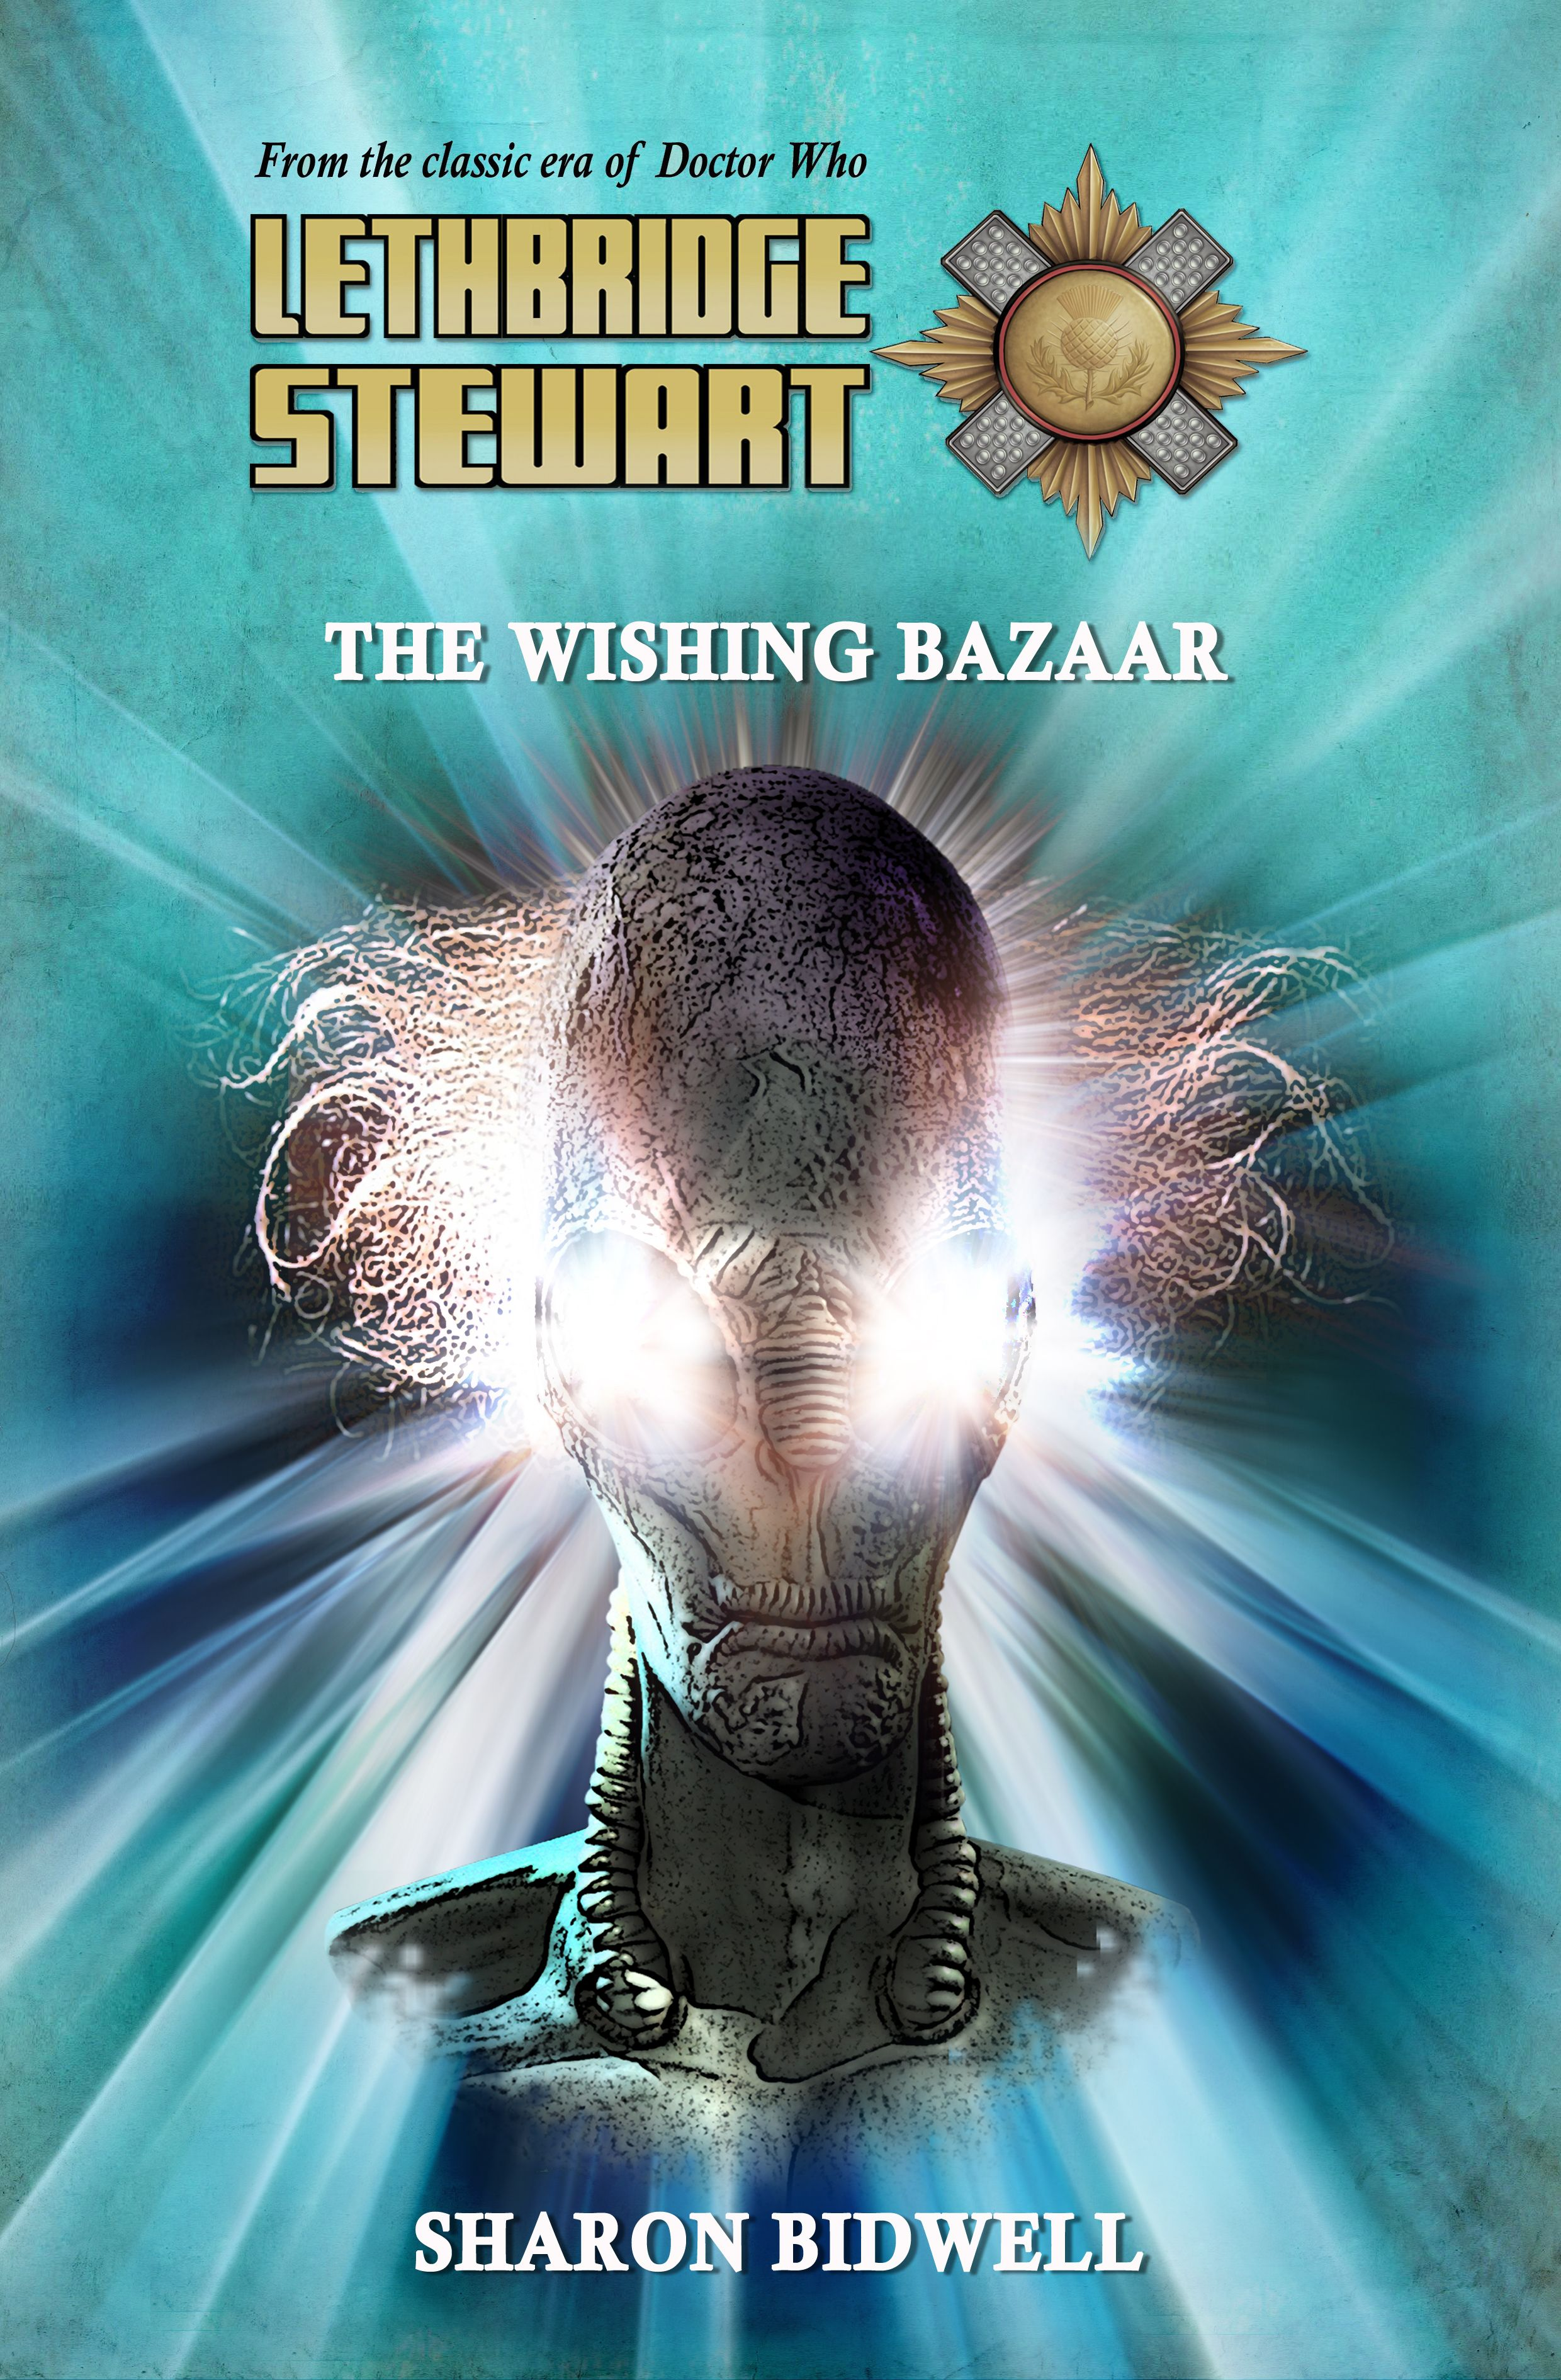 Lethbridge-Stewart: The Wishing Bazaar (Credit: Candy Jar Books)